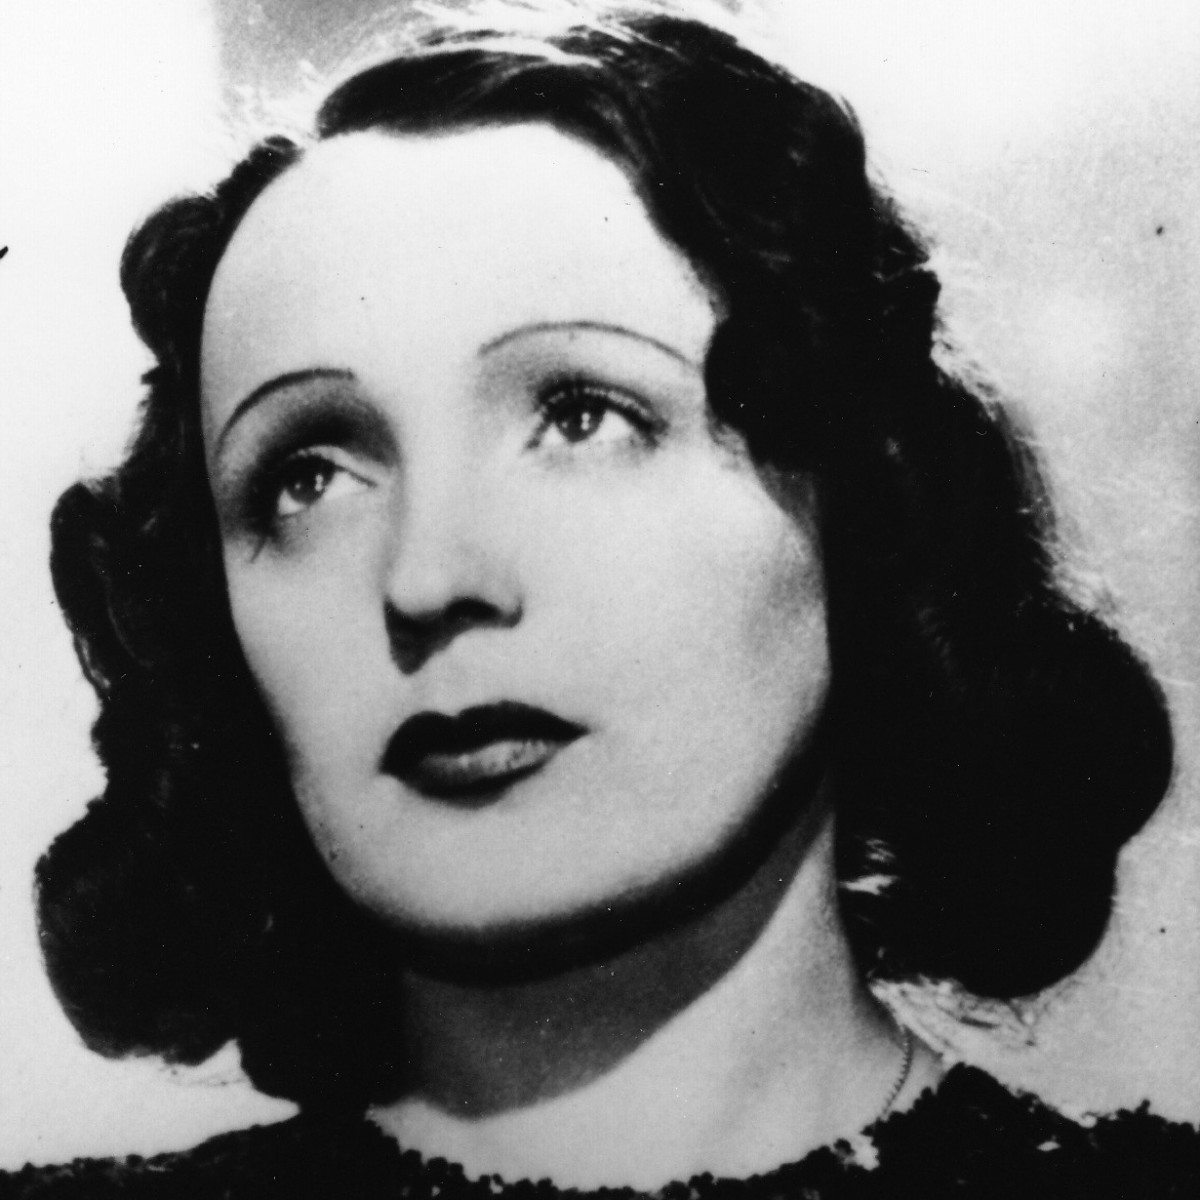 Edith Piaf headshot